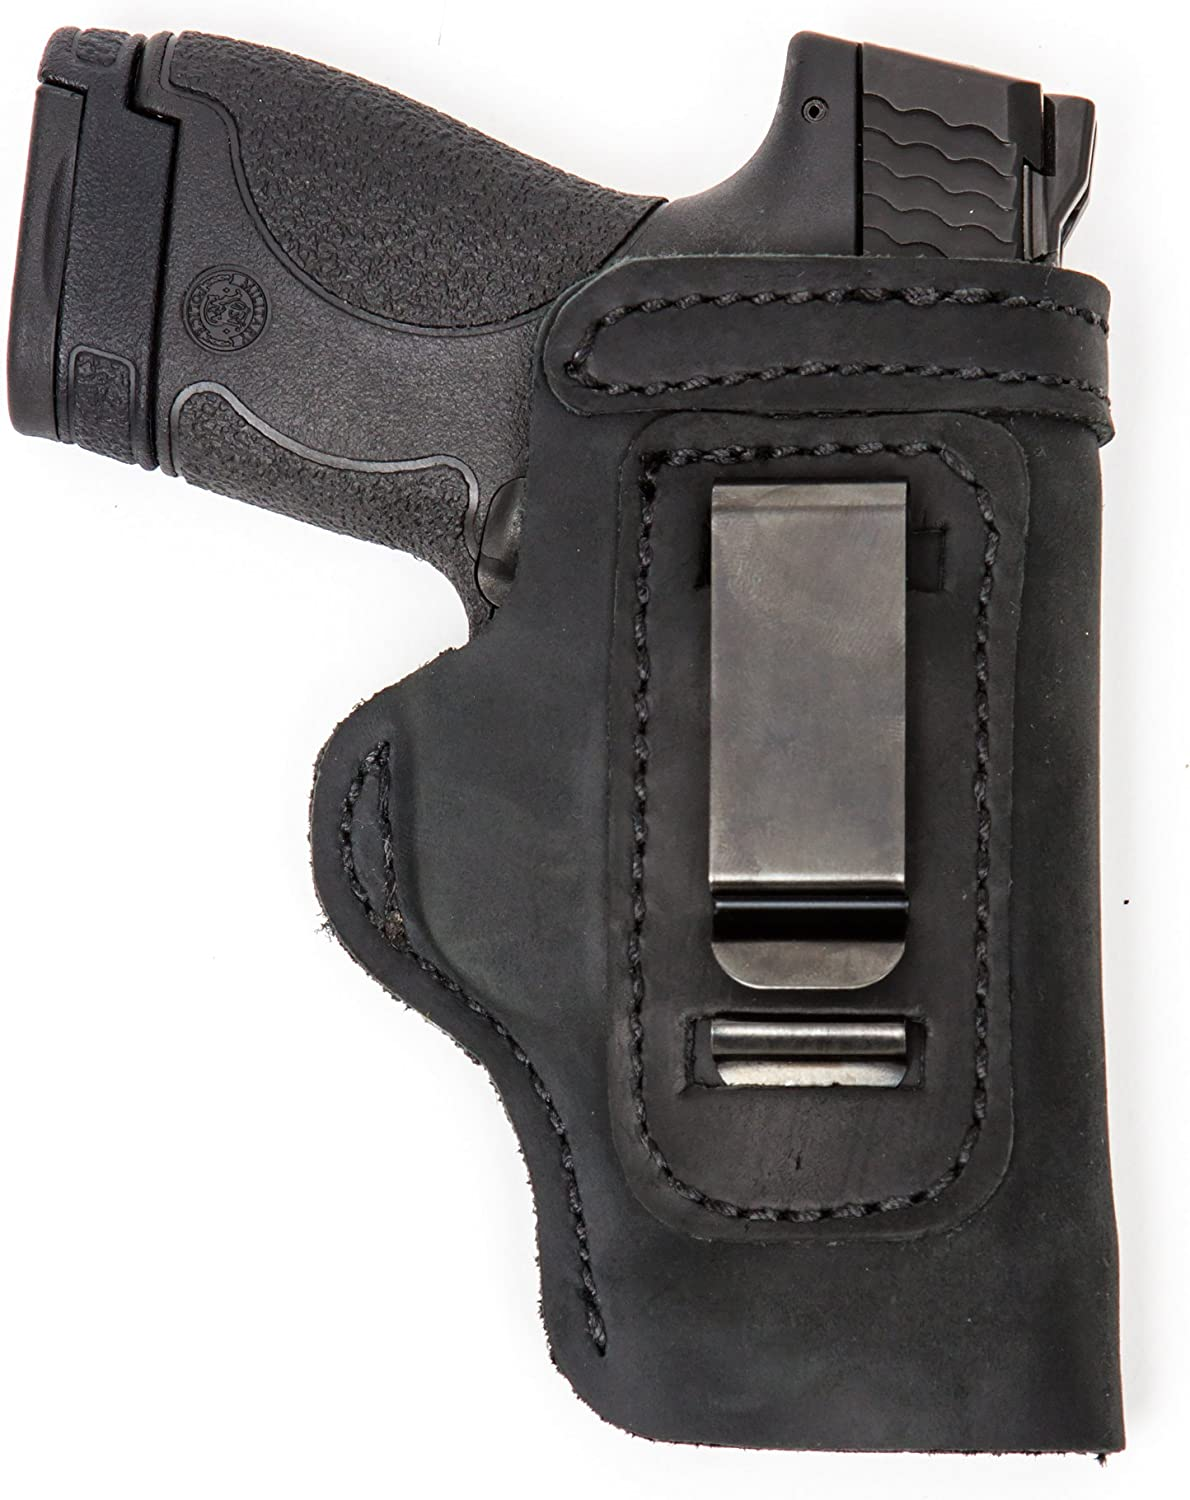 Smith & Wesson M&P Shield Gun Holster